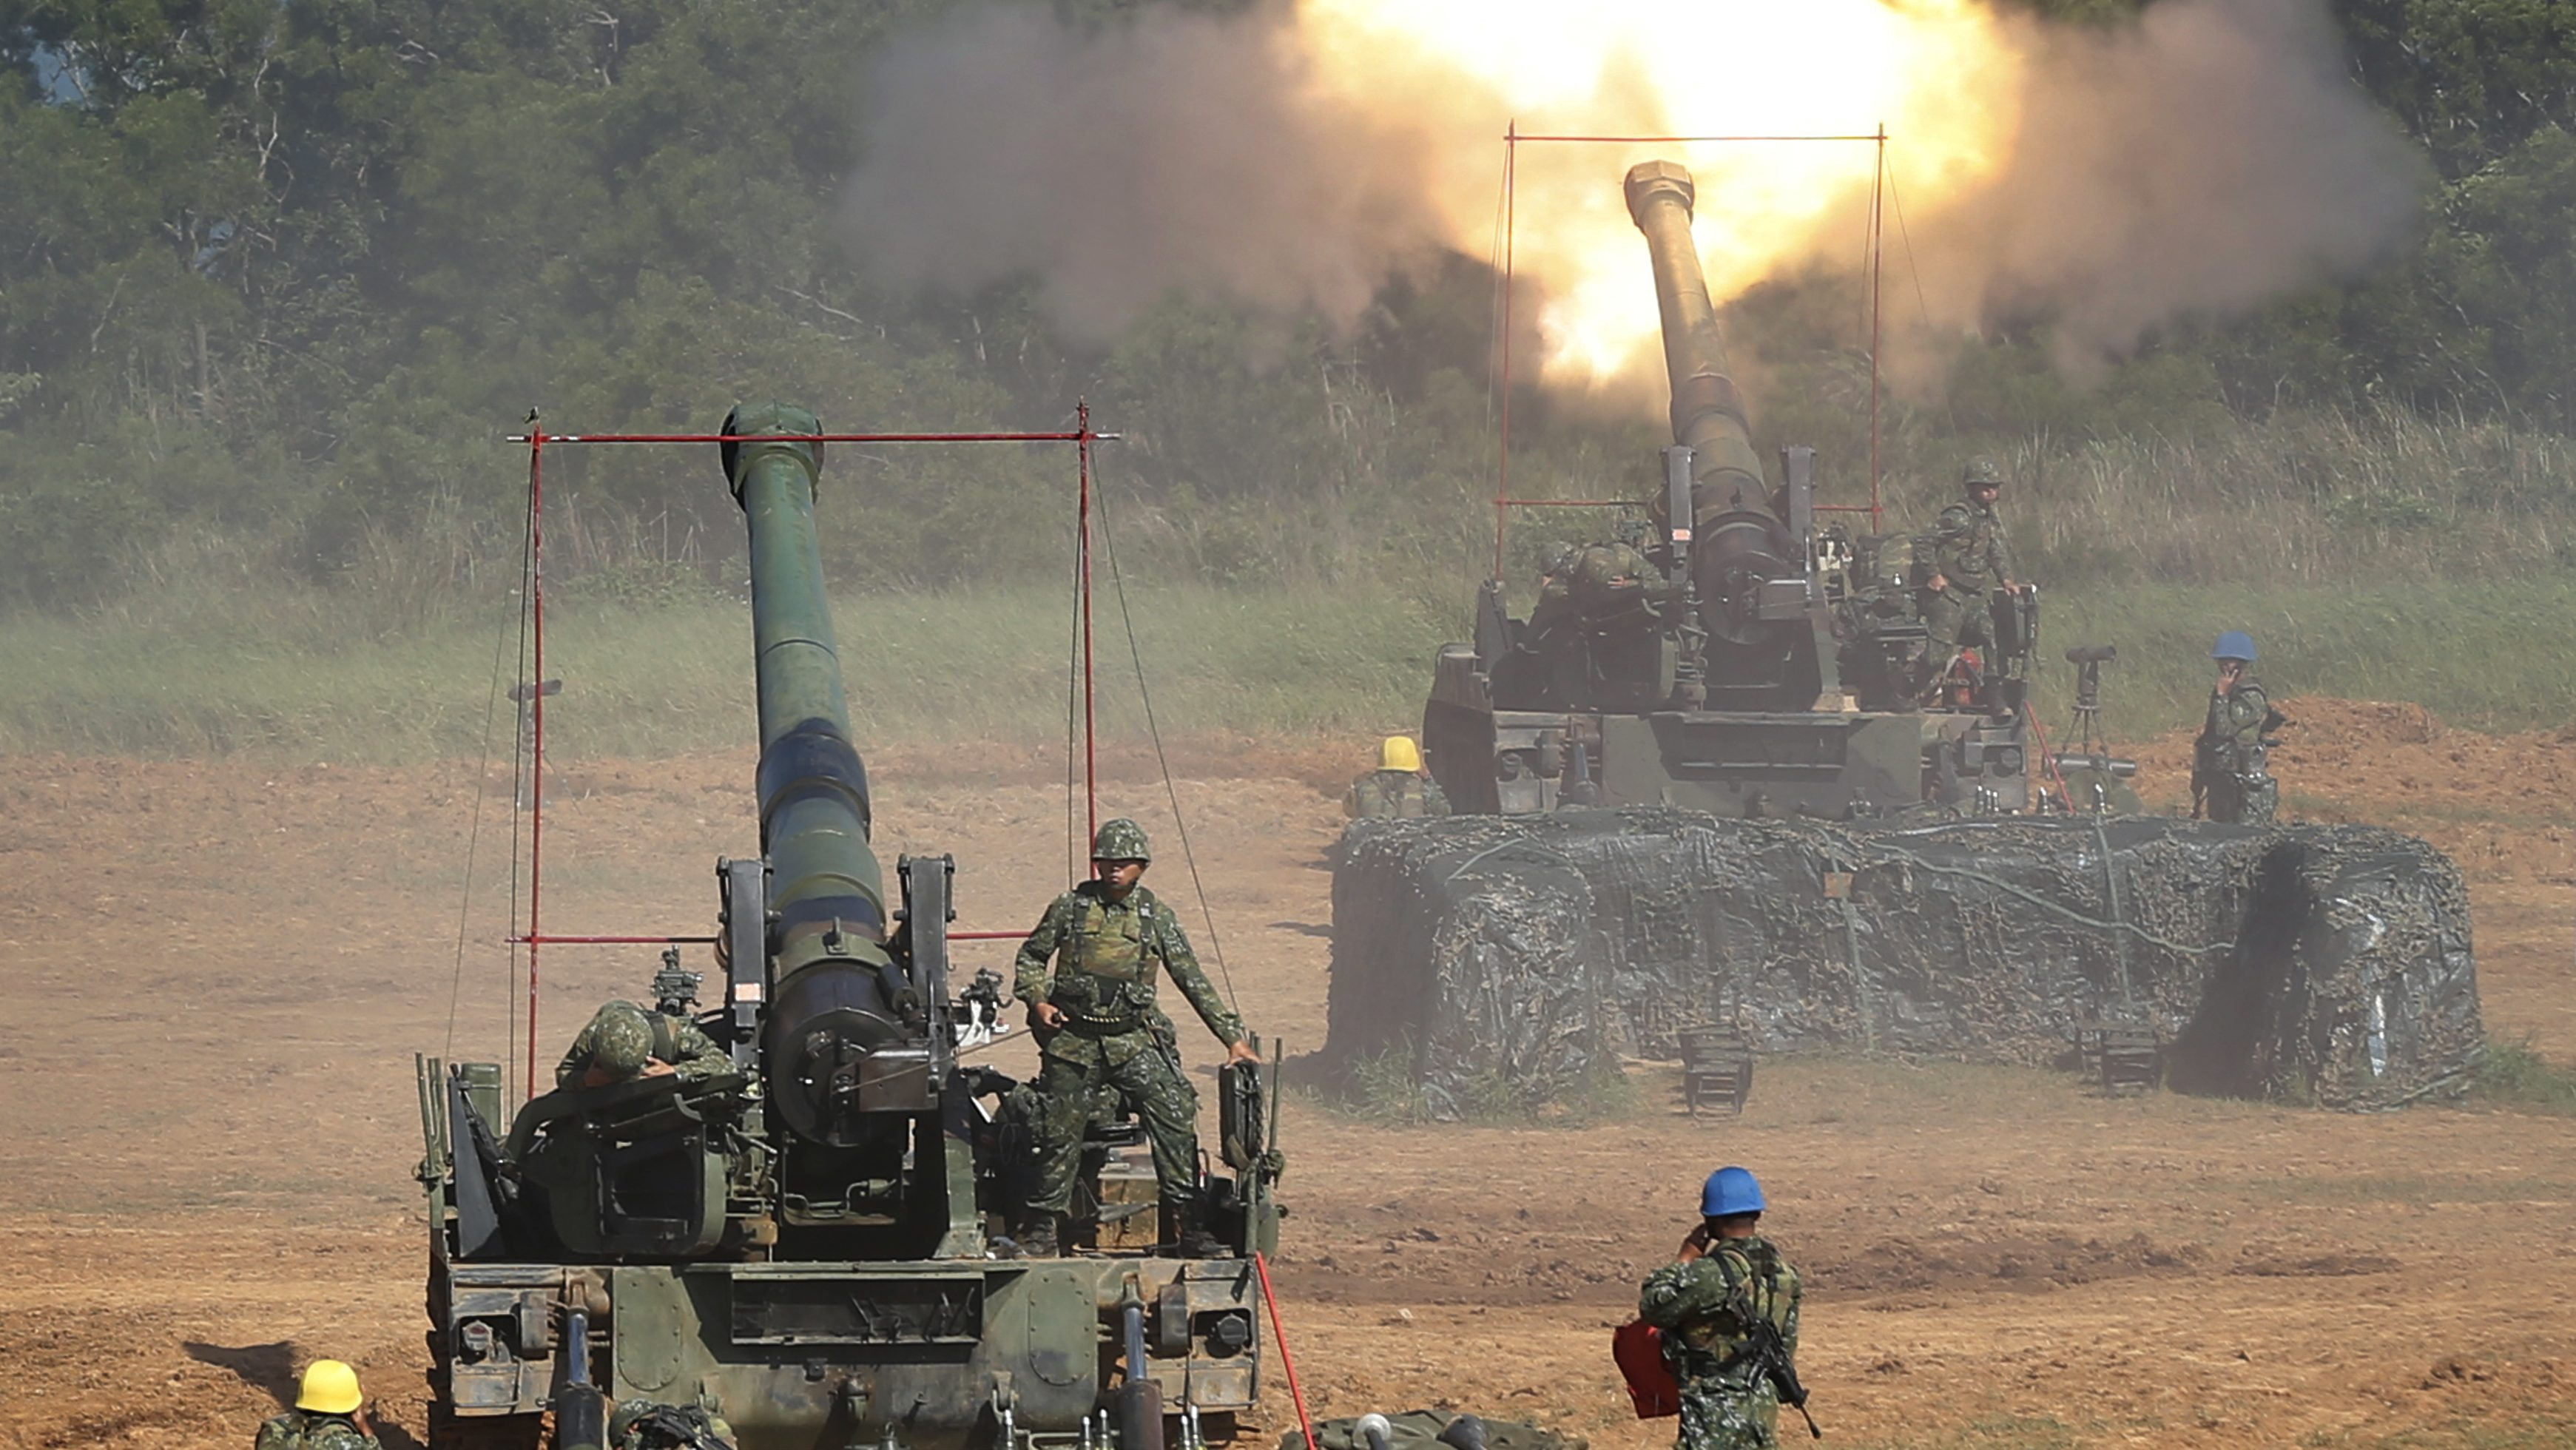 In this Sept. 10, 2015 file photo, Taiwan's military fire artillery from self-propelled Howitzers during the annual Han Kuang exercises in Hsinchu, north eastern Taiwan. The State Department has approved arms sales to Taiwan worth a total of $1.4 billion, the first such deal with the self-governing island since President Donald Trump took office, officials said June 29, 2017. The sale will anger China, which regards Taiwan as part of its territory. It comes at a delicate time for relations between Washington and Beijing over efforts to rein in nuclear-armed North Korea.